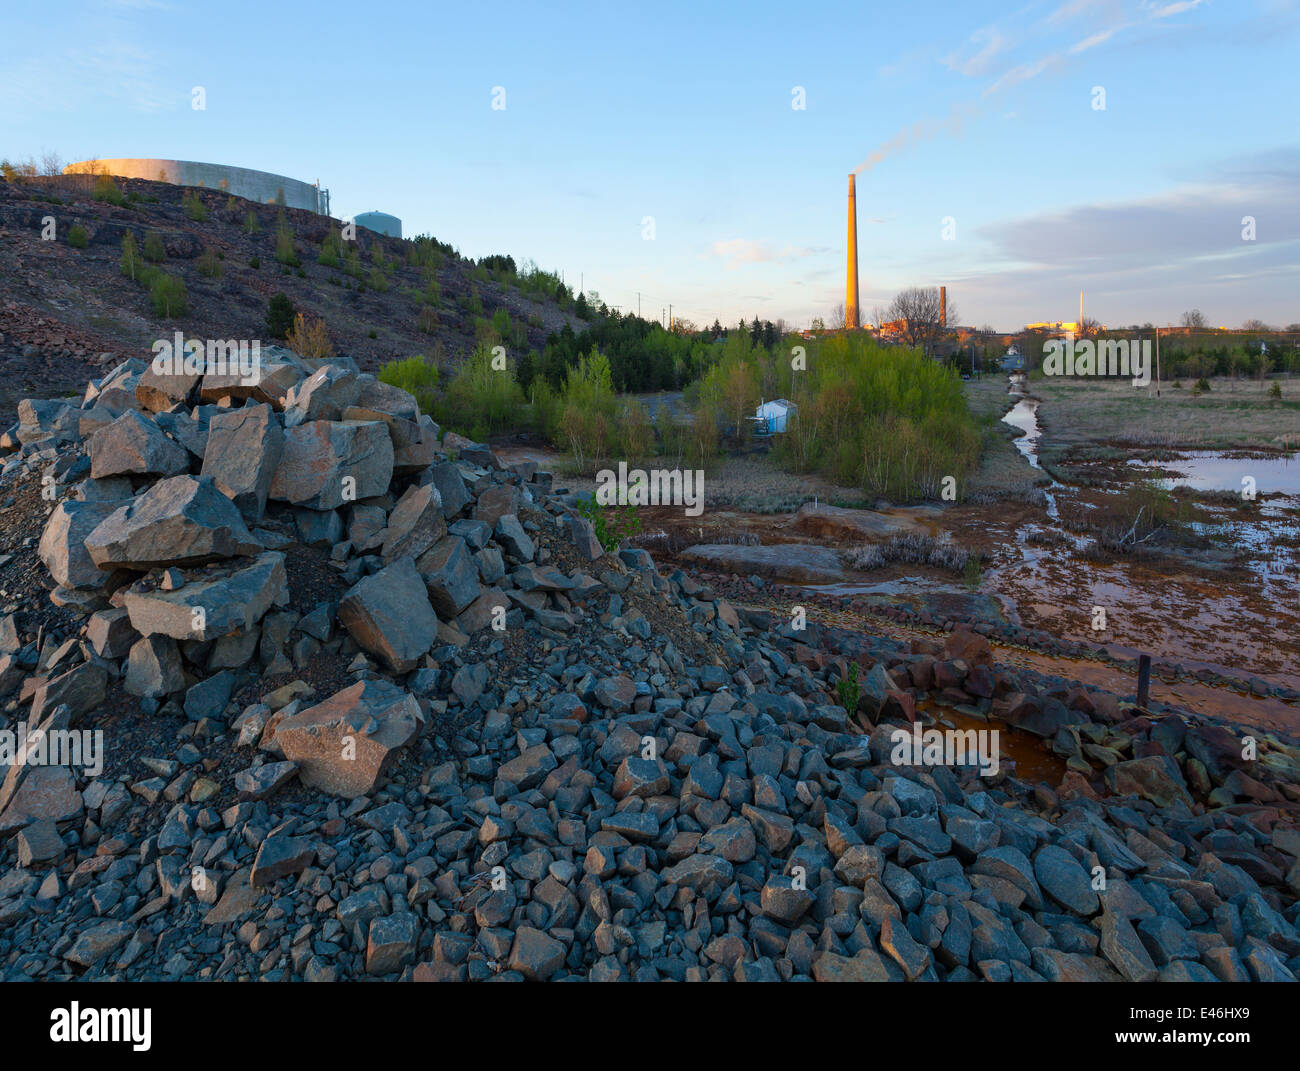 Water From A Nearby Tailings Pond Leaks Into The Local Water Supply Stock Photo Royalty Free